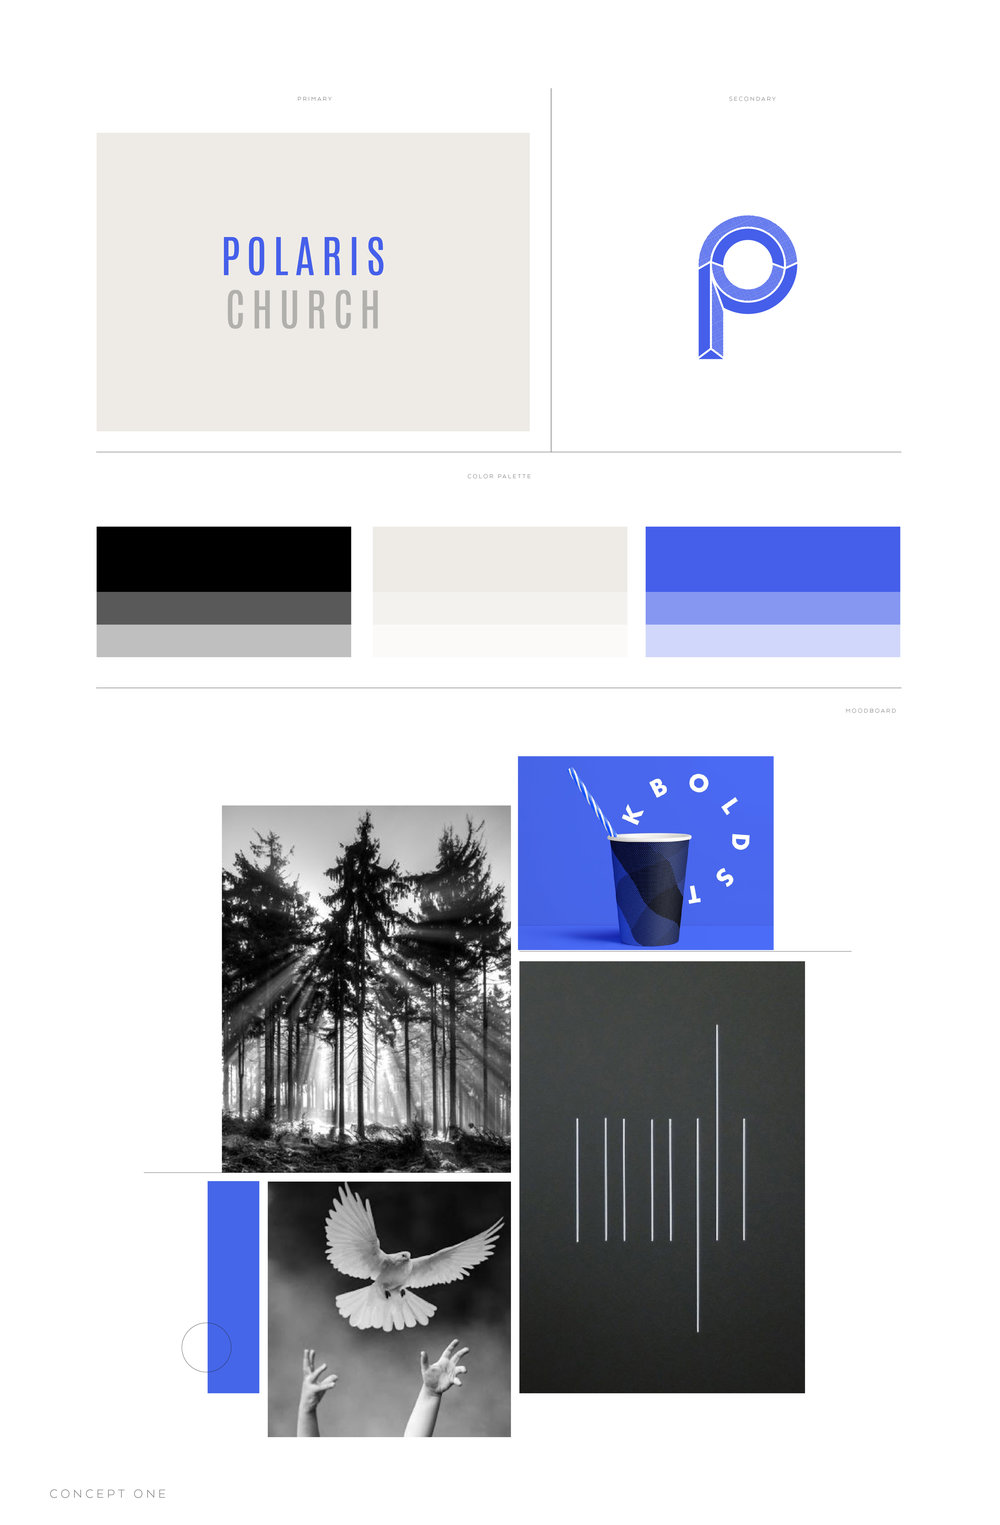 POLARISCHURCH_HONOR_BRANDBOARD_01.jpg